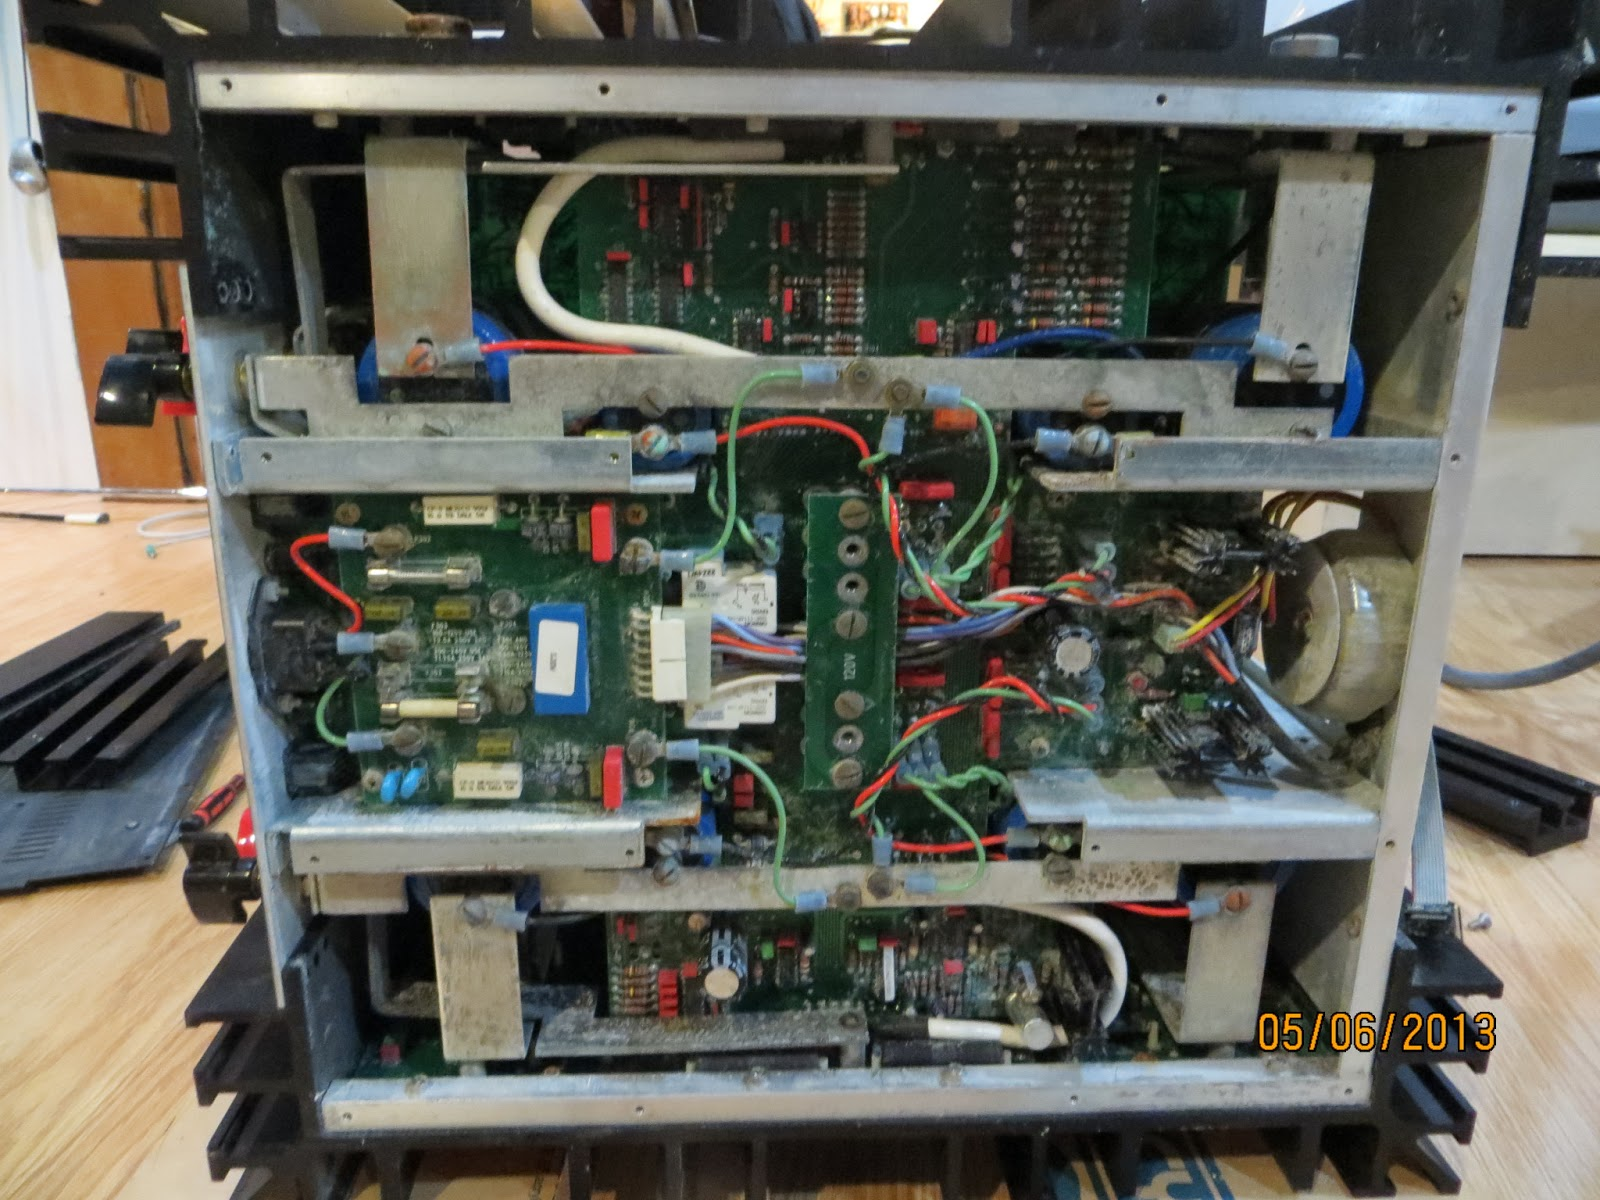 Restoring Mark Levinson No. 331 Power Amp from Water Damage